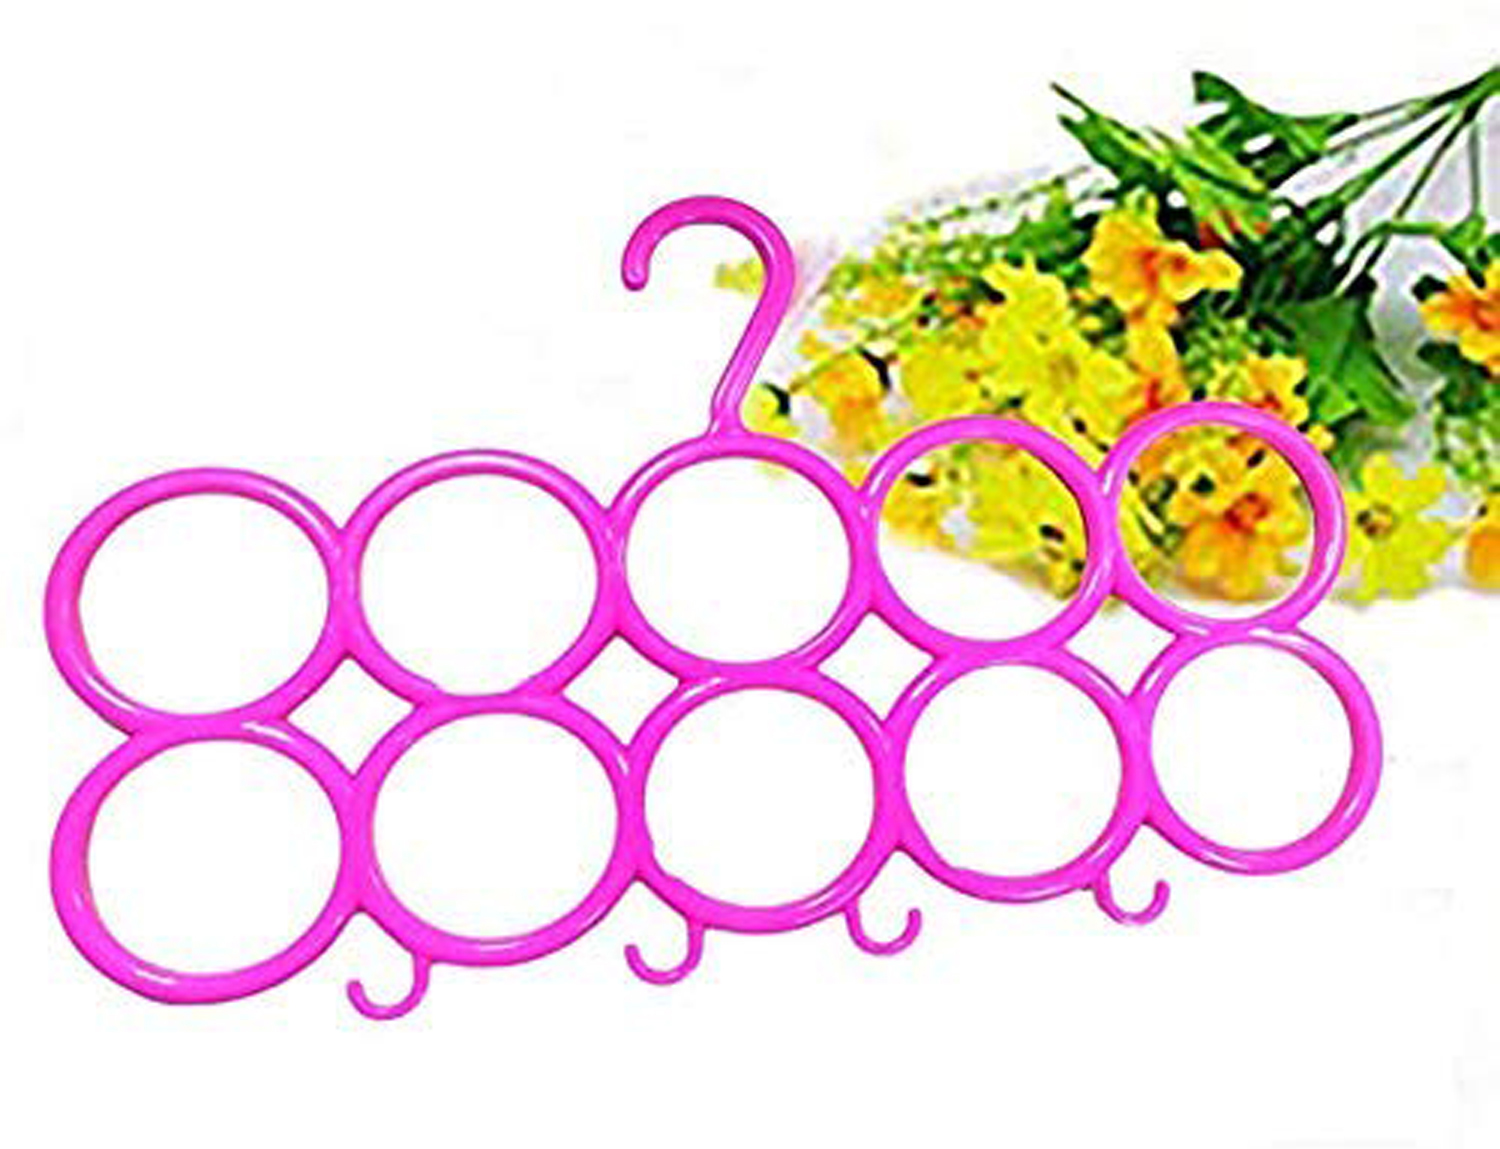 Kuber Industries 10-Circle Plastic 6 Pieces Ring Hanger for Scarf, Shawl, Tie, Belt, Closet Accessory Wardrobe Organizer (MultiColor) - CTKTC30768